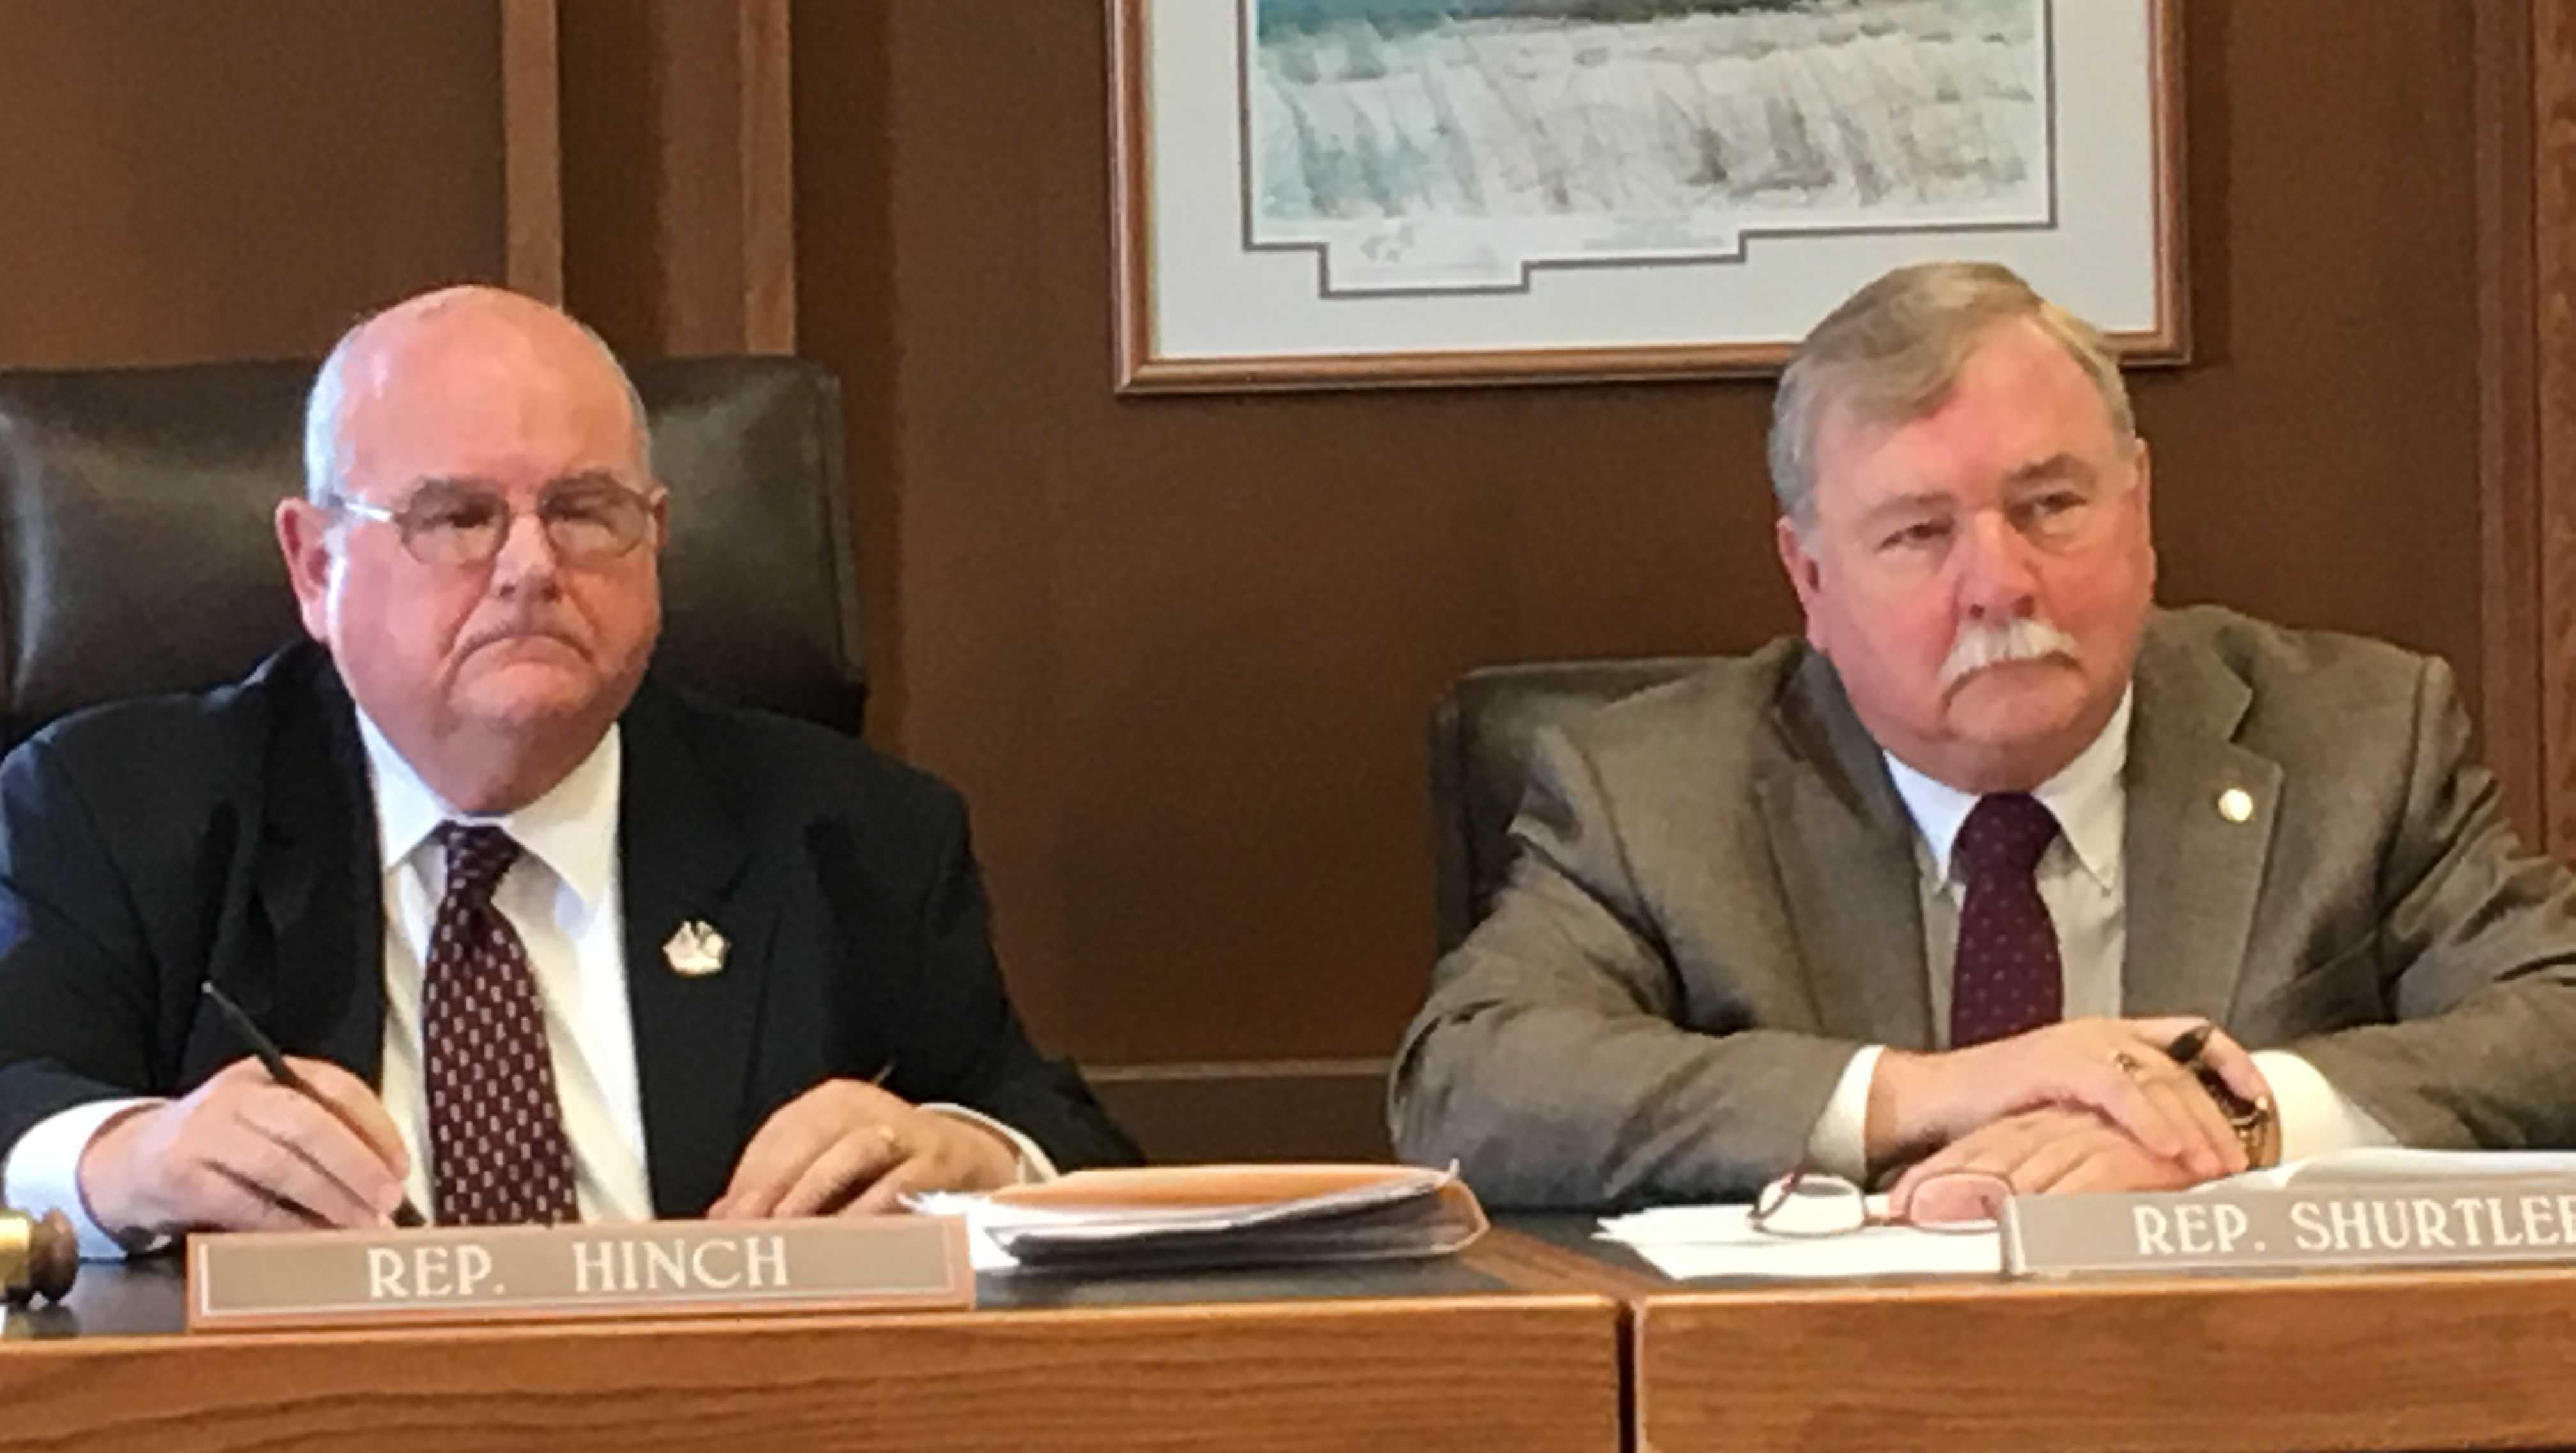 House Majority Leader Richard Hinch (left) and House Democratic Leader Steve Shurtleff are among the key players in Thursday's New Hampshire House vote on a controversial election reform bill.